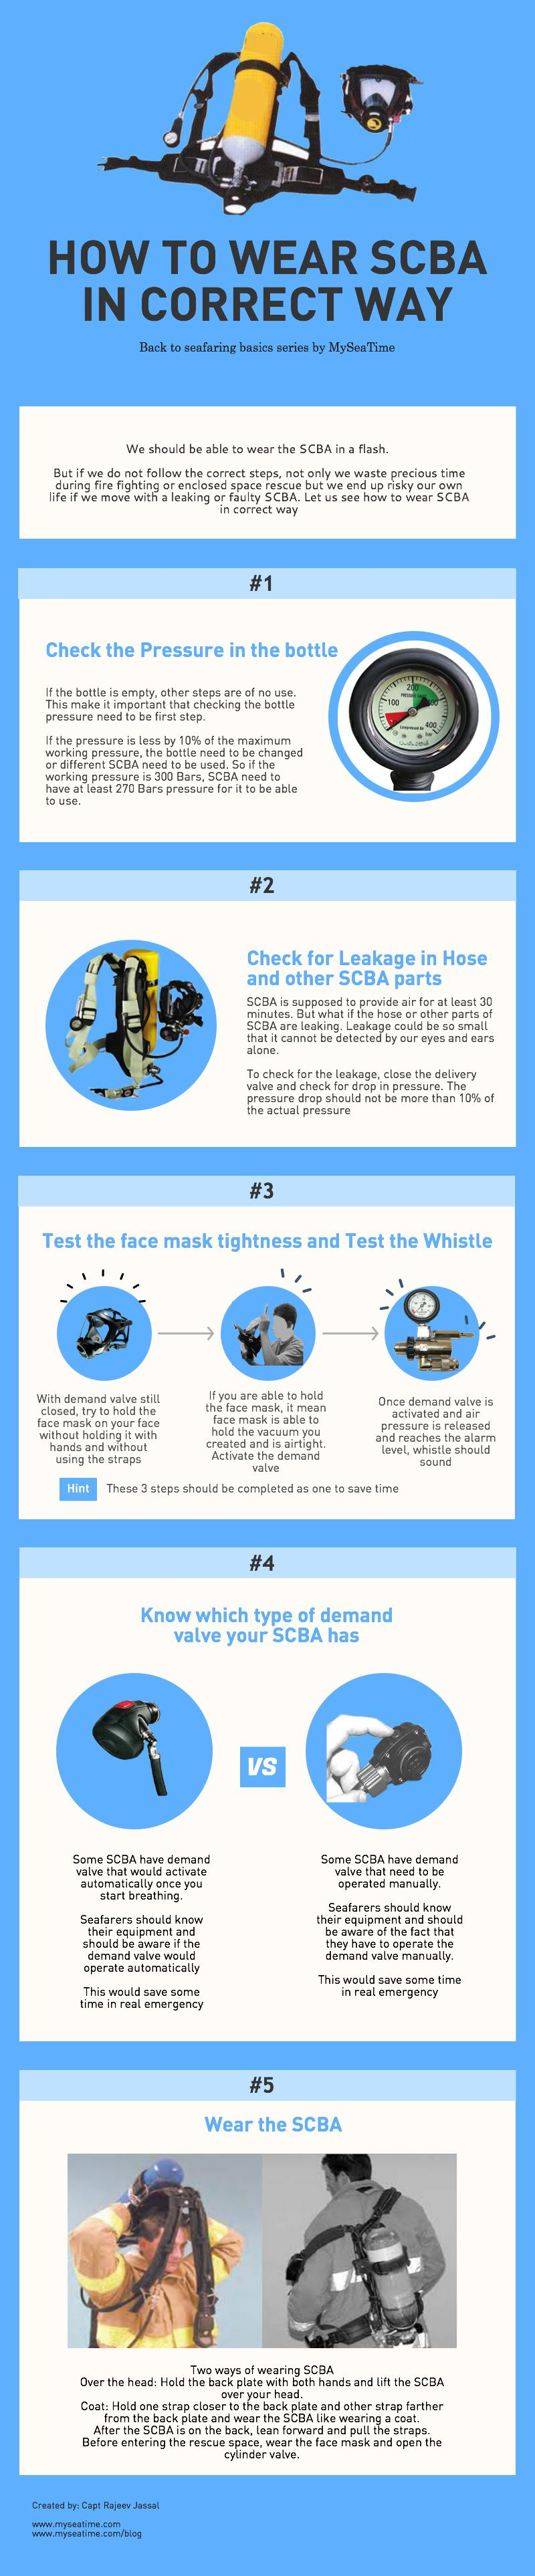 infographic-how-to-wear-scba